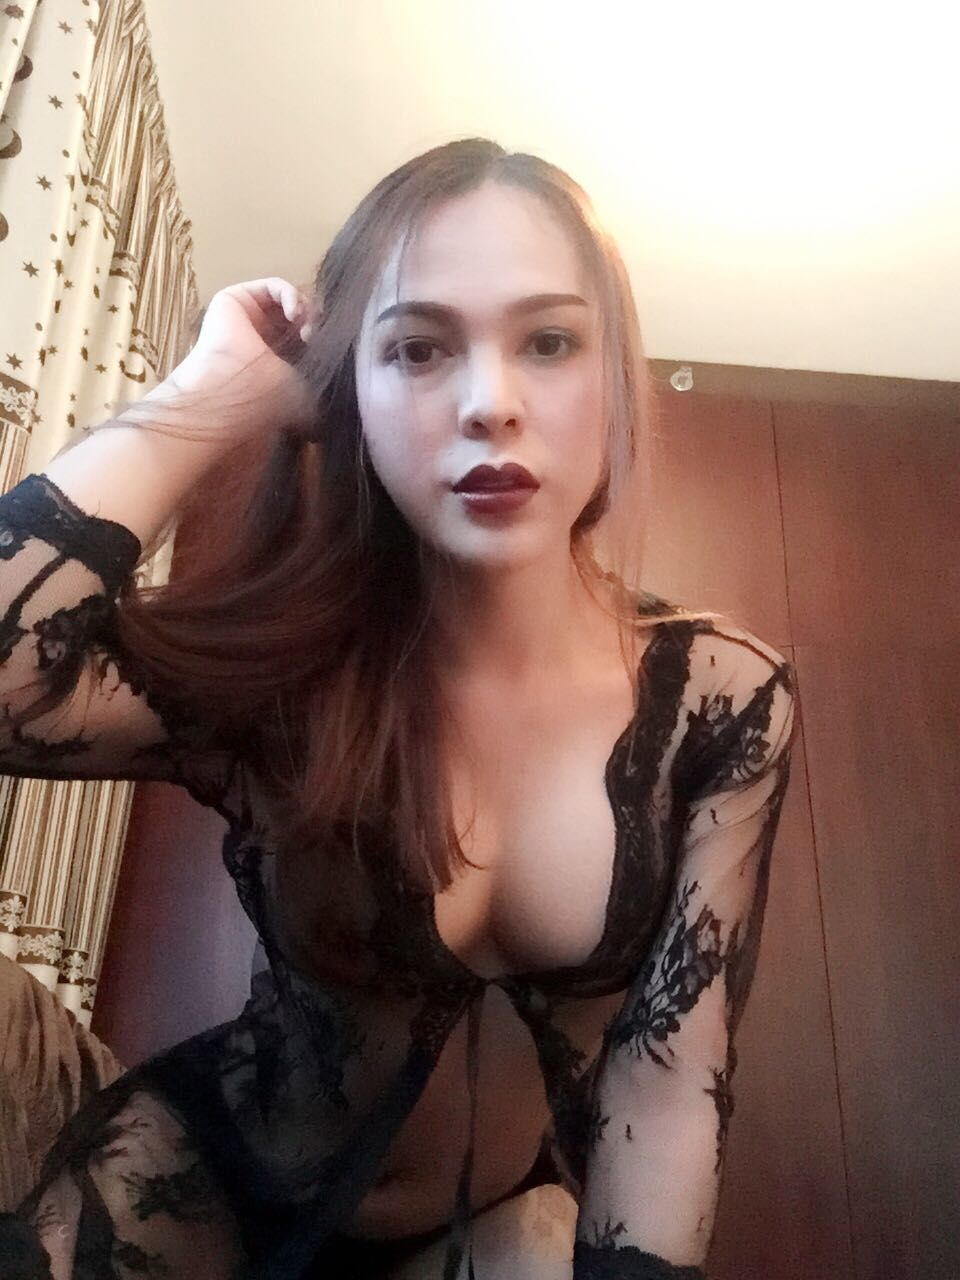 cheap escort thailand sex oral